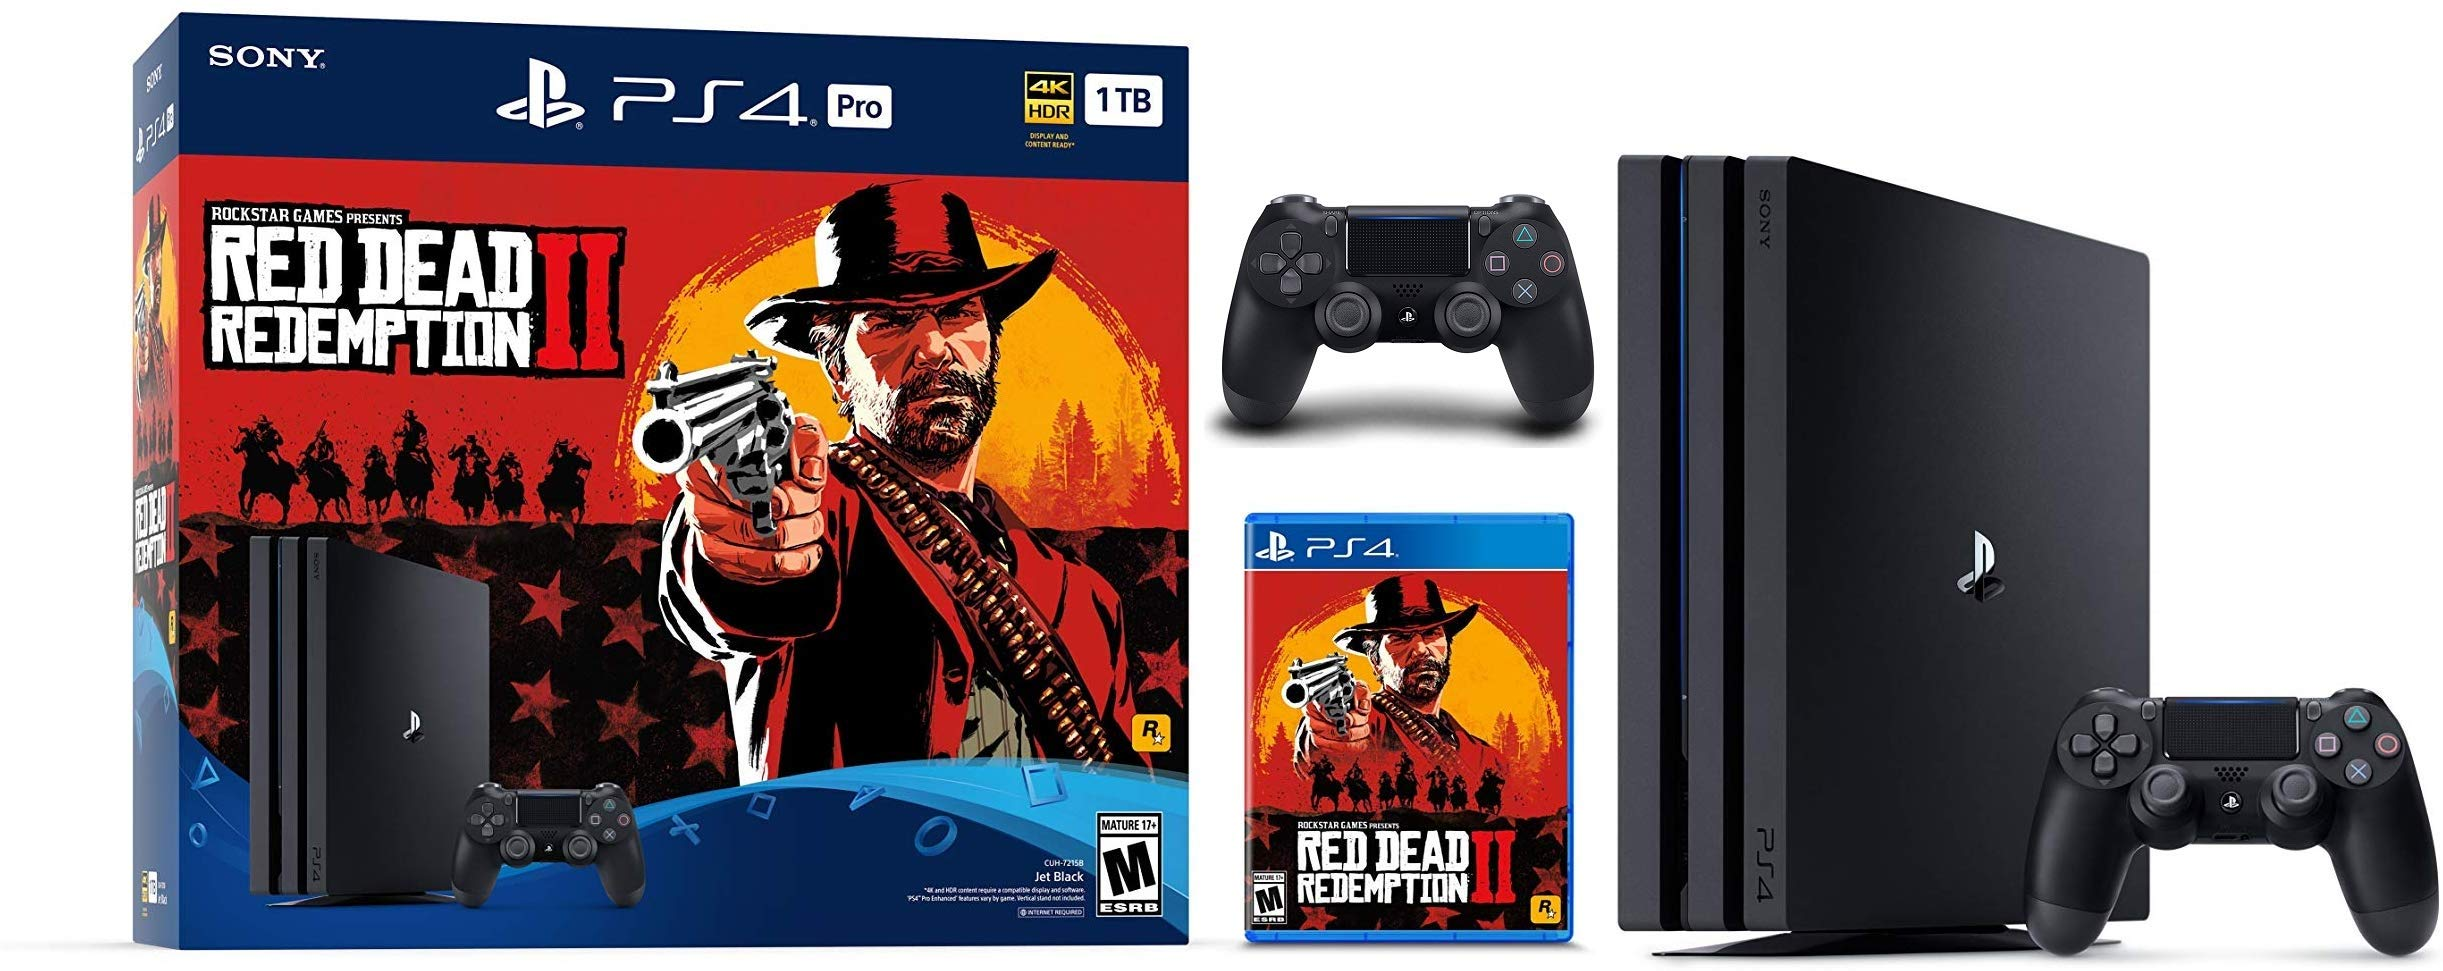 Sony PlayStation 4 PS4 Pro Console with Red Dead Redemption 2 Game Bundle, Can up to (1TB/2TB HDD/1TB SSD Storage)